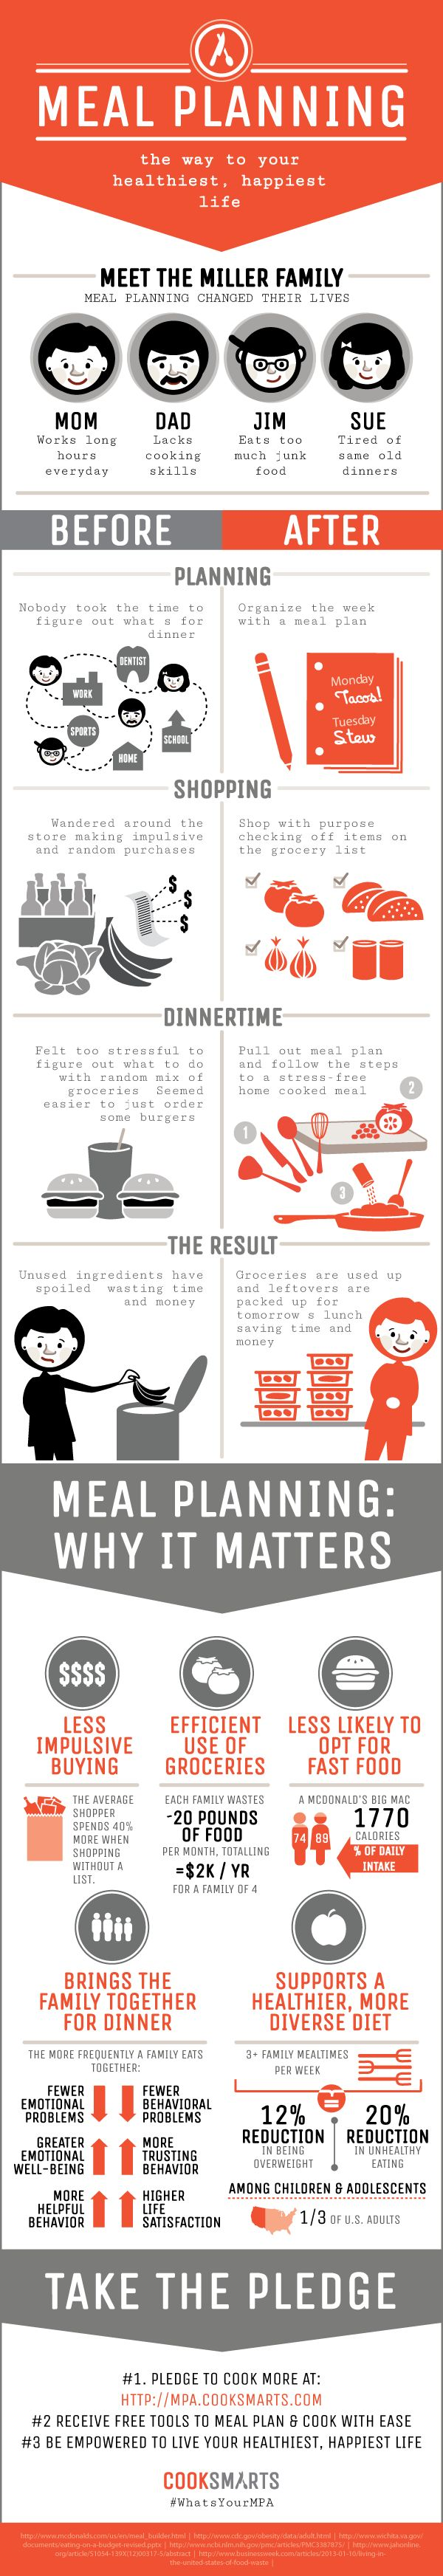 Announcing Our New Meal Planning Awareness Program #WhatsYourMPA